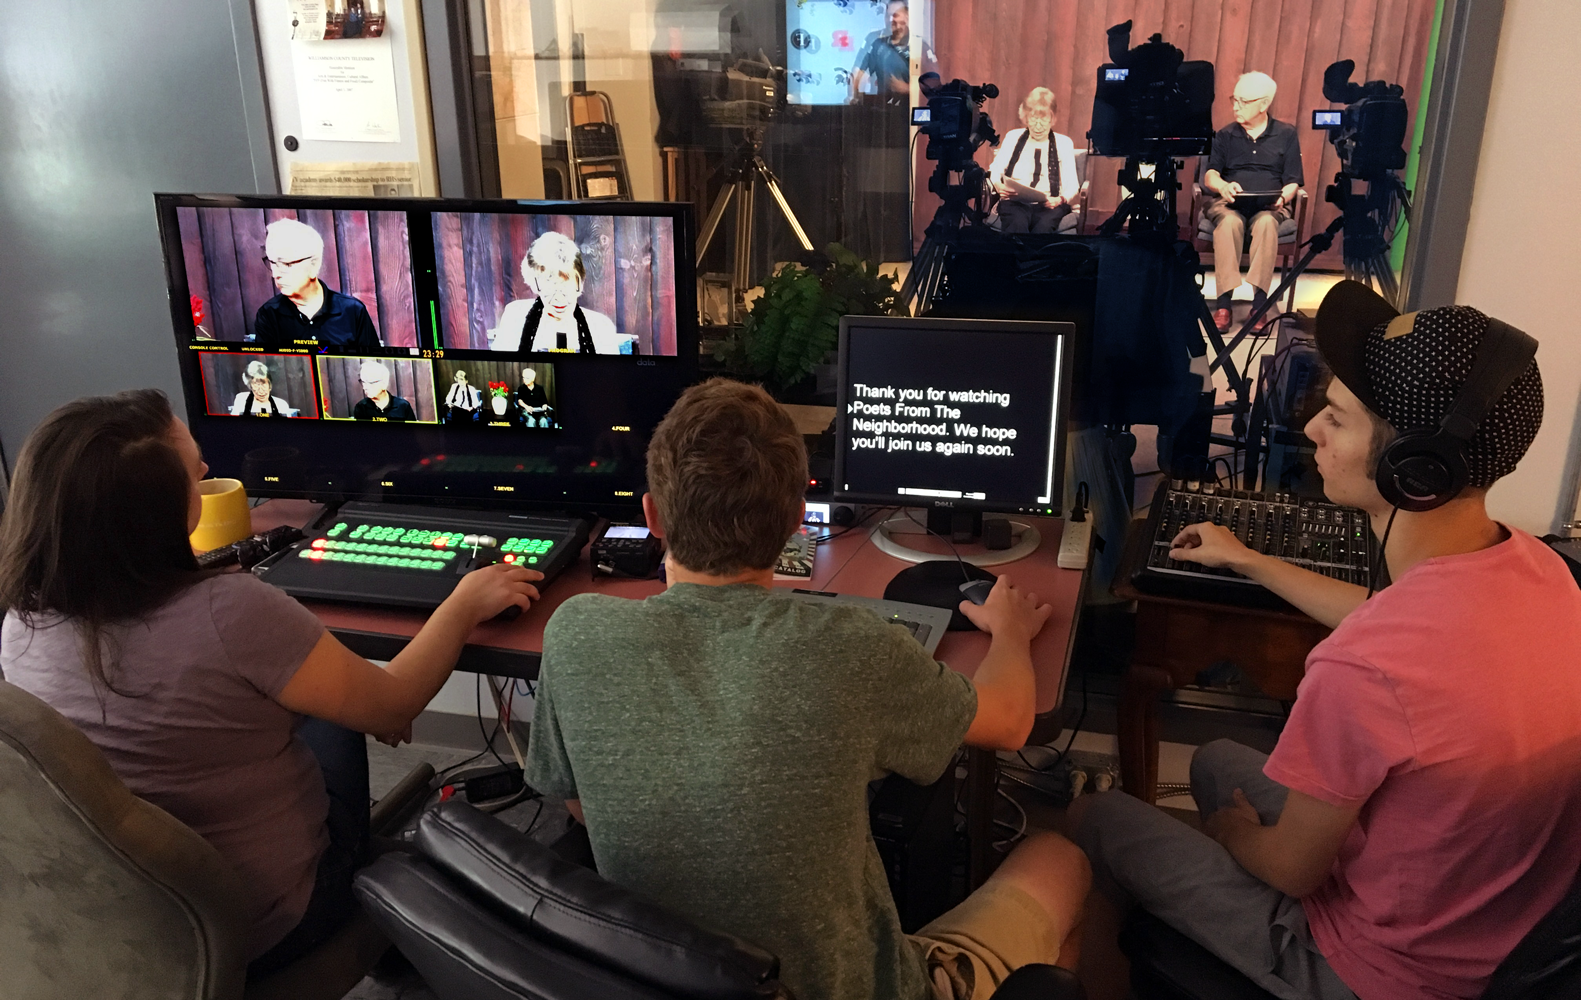 Heather Max Jack at work